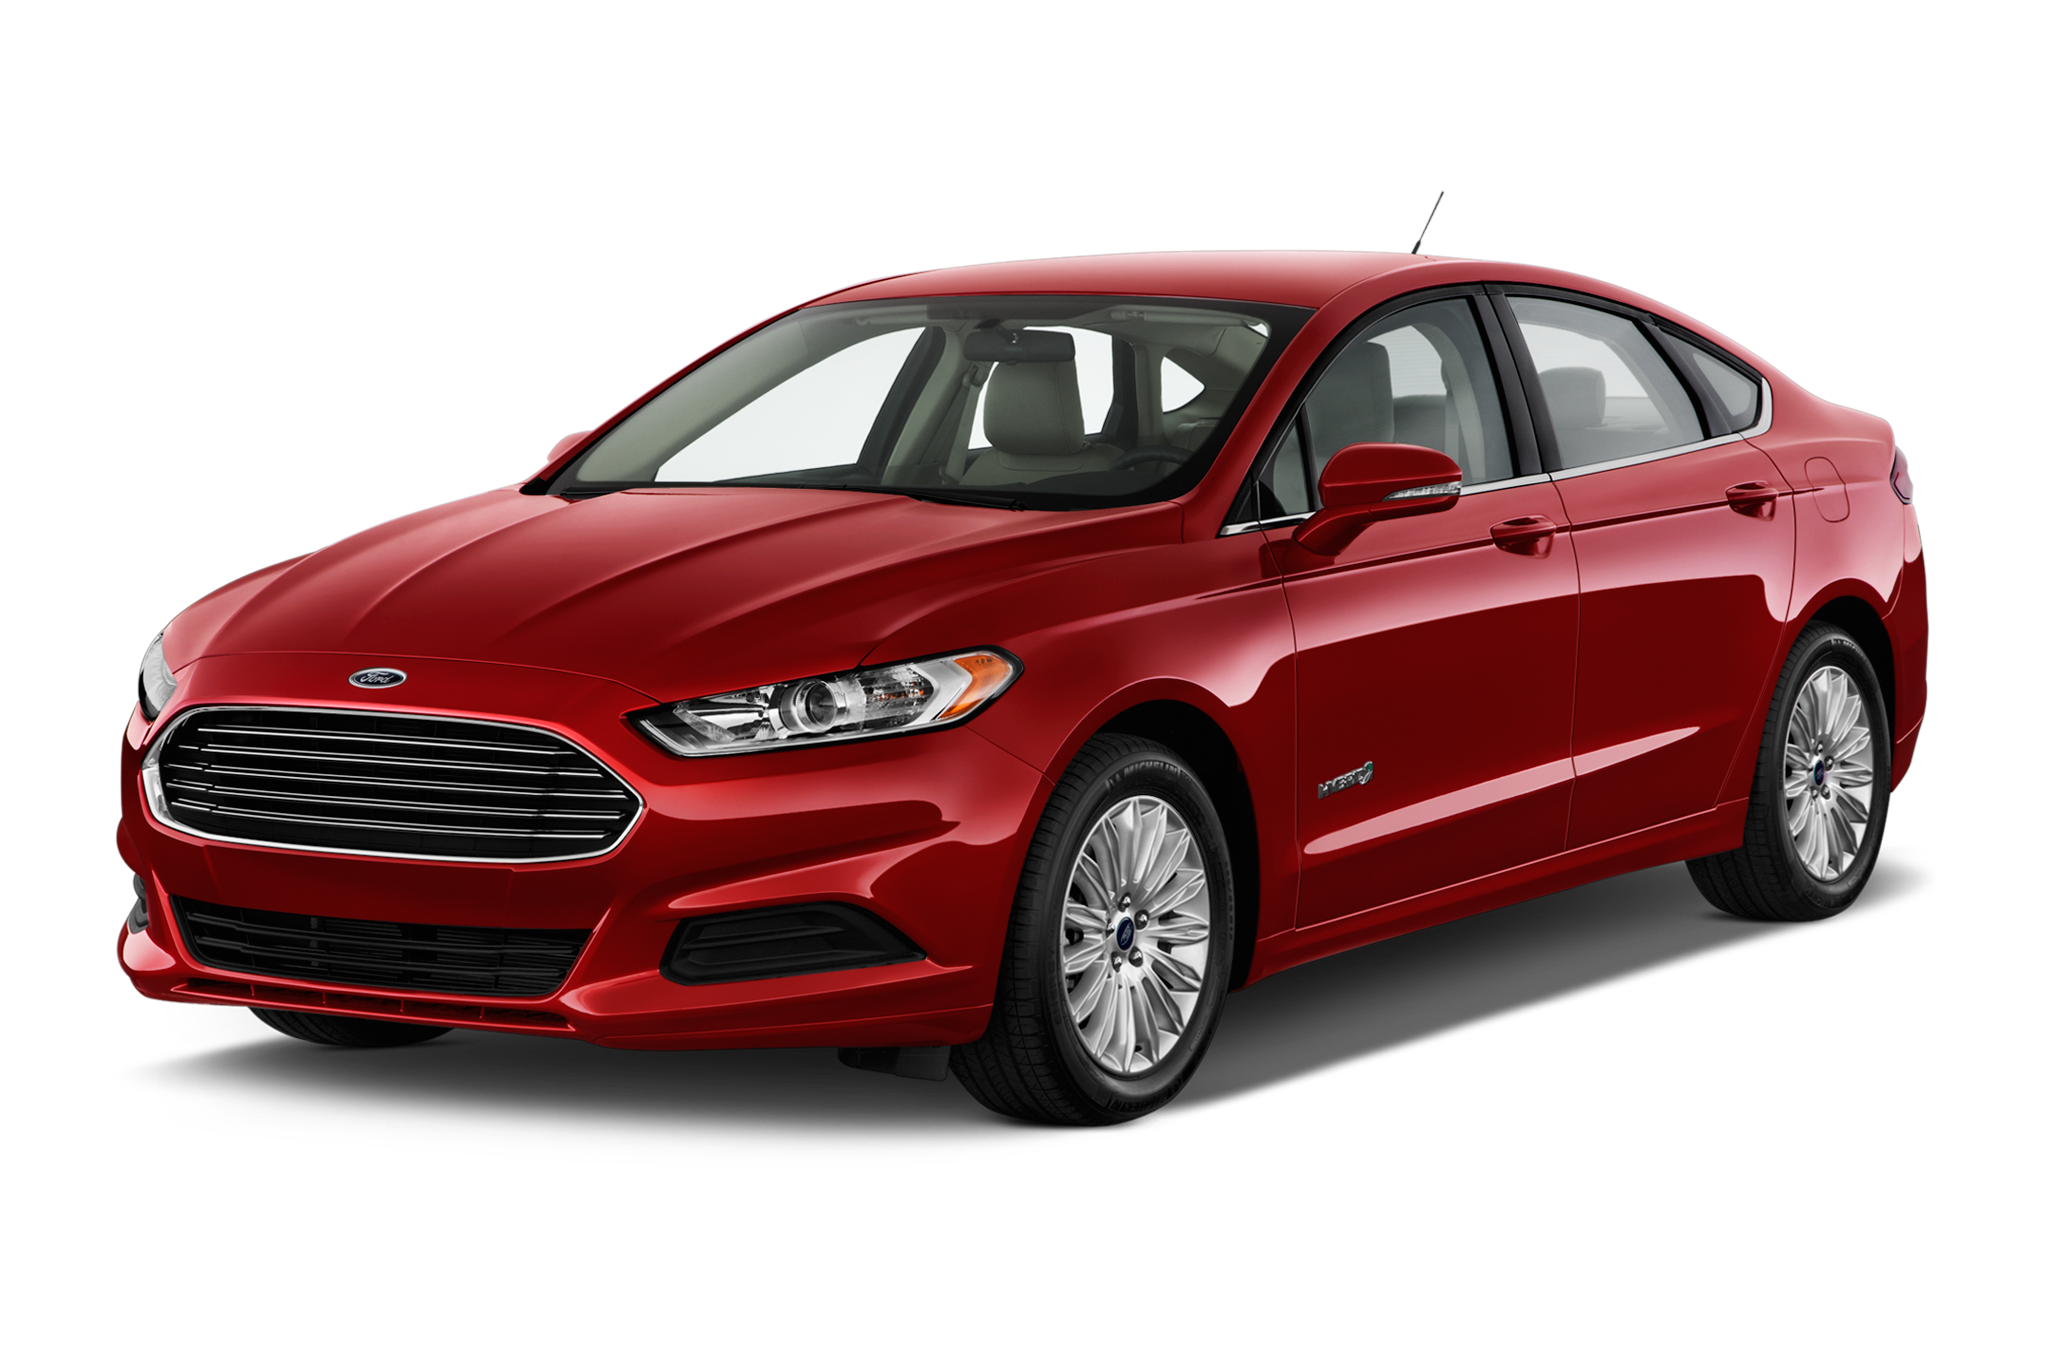 2020 Ford Fusion Refresh Leaked Online in Slideshow